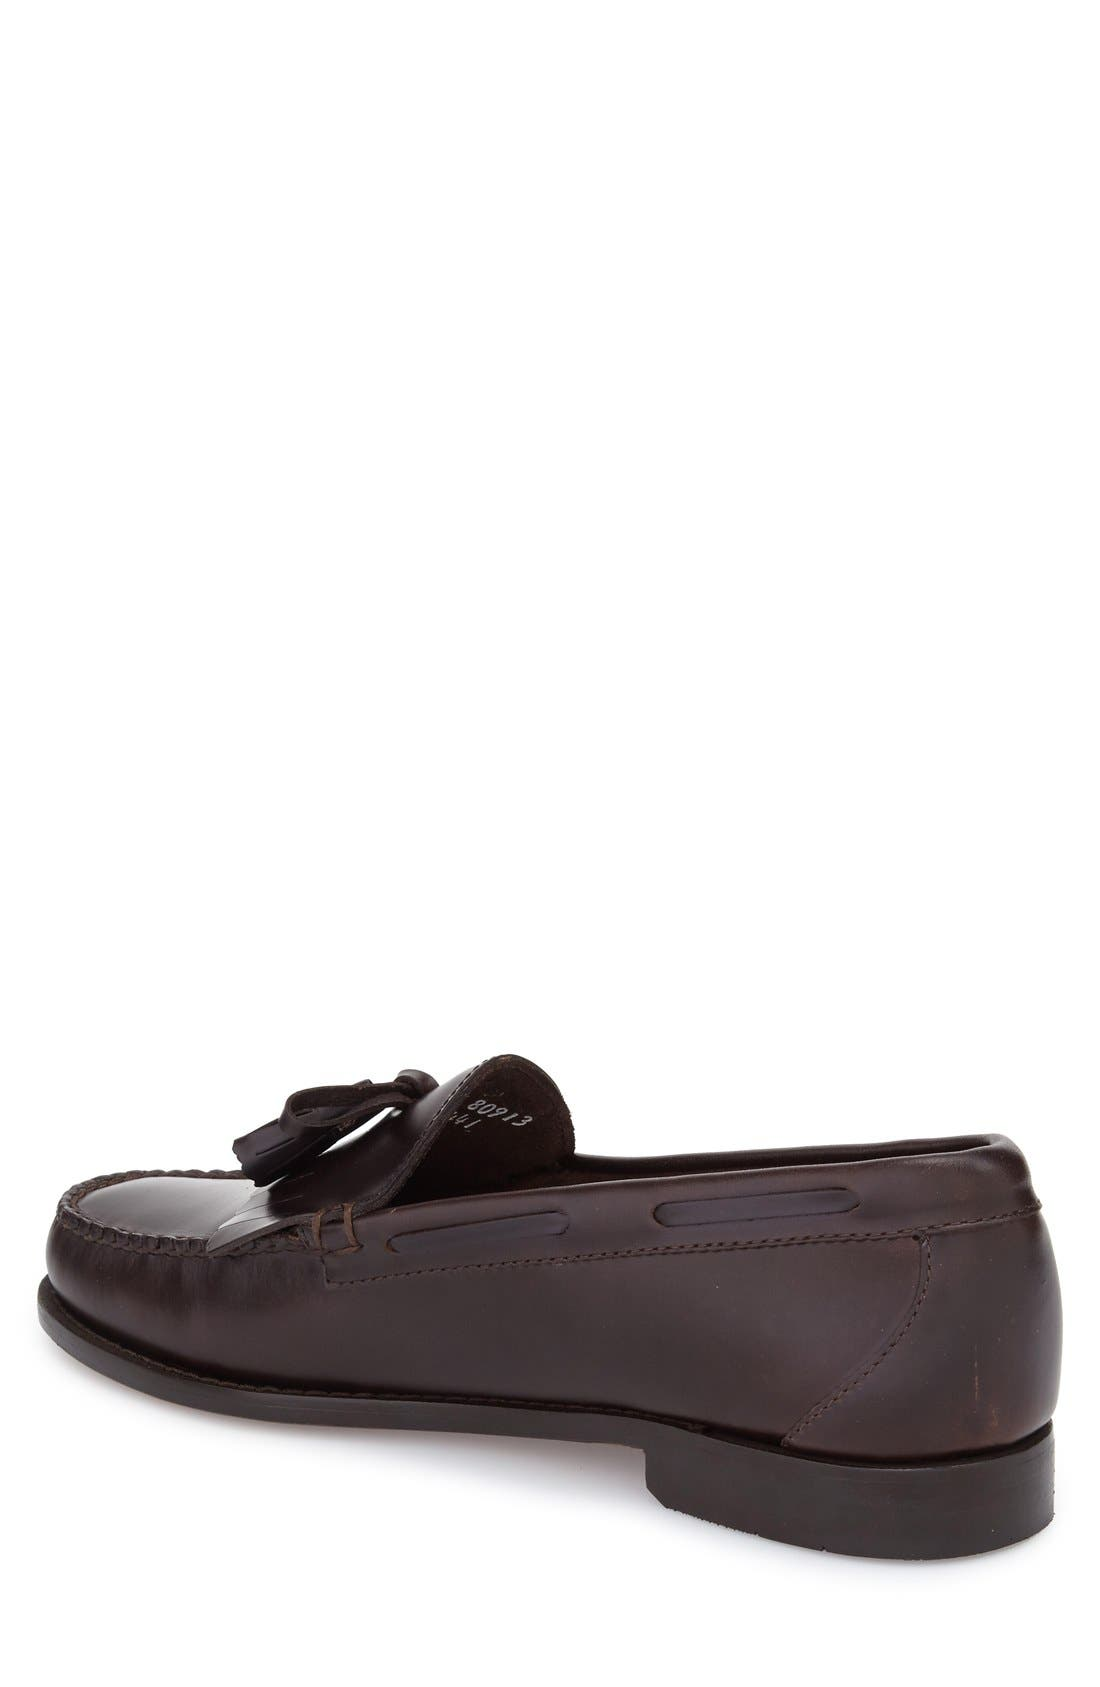 'Lawrence' Tassel Loafer,                             Alternate thumbnail 5, color,